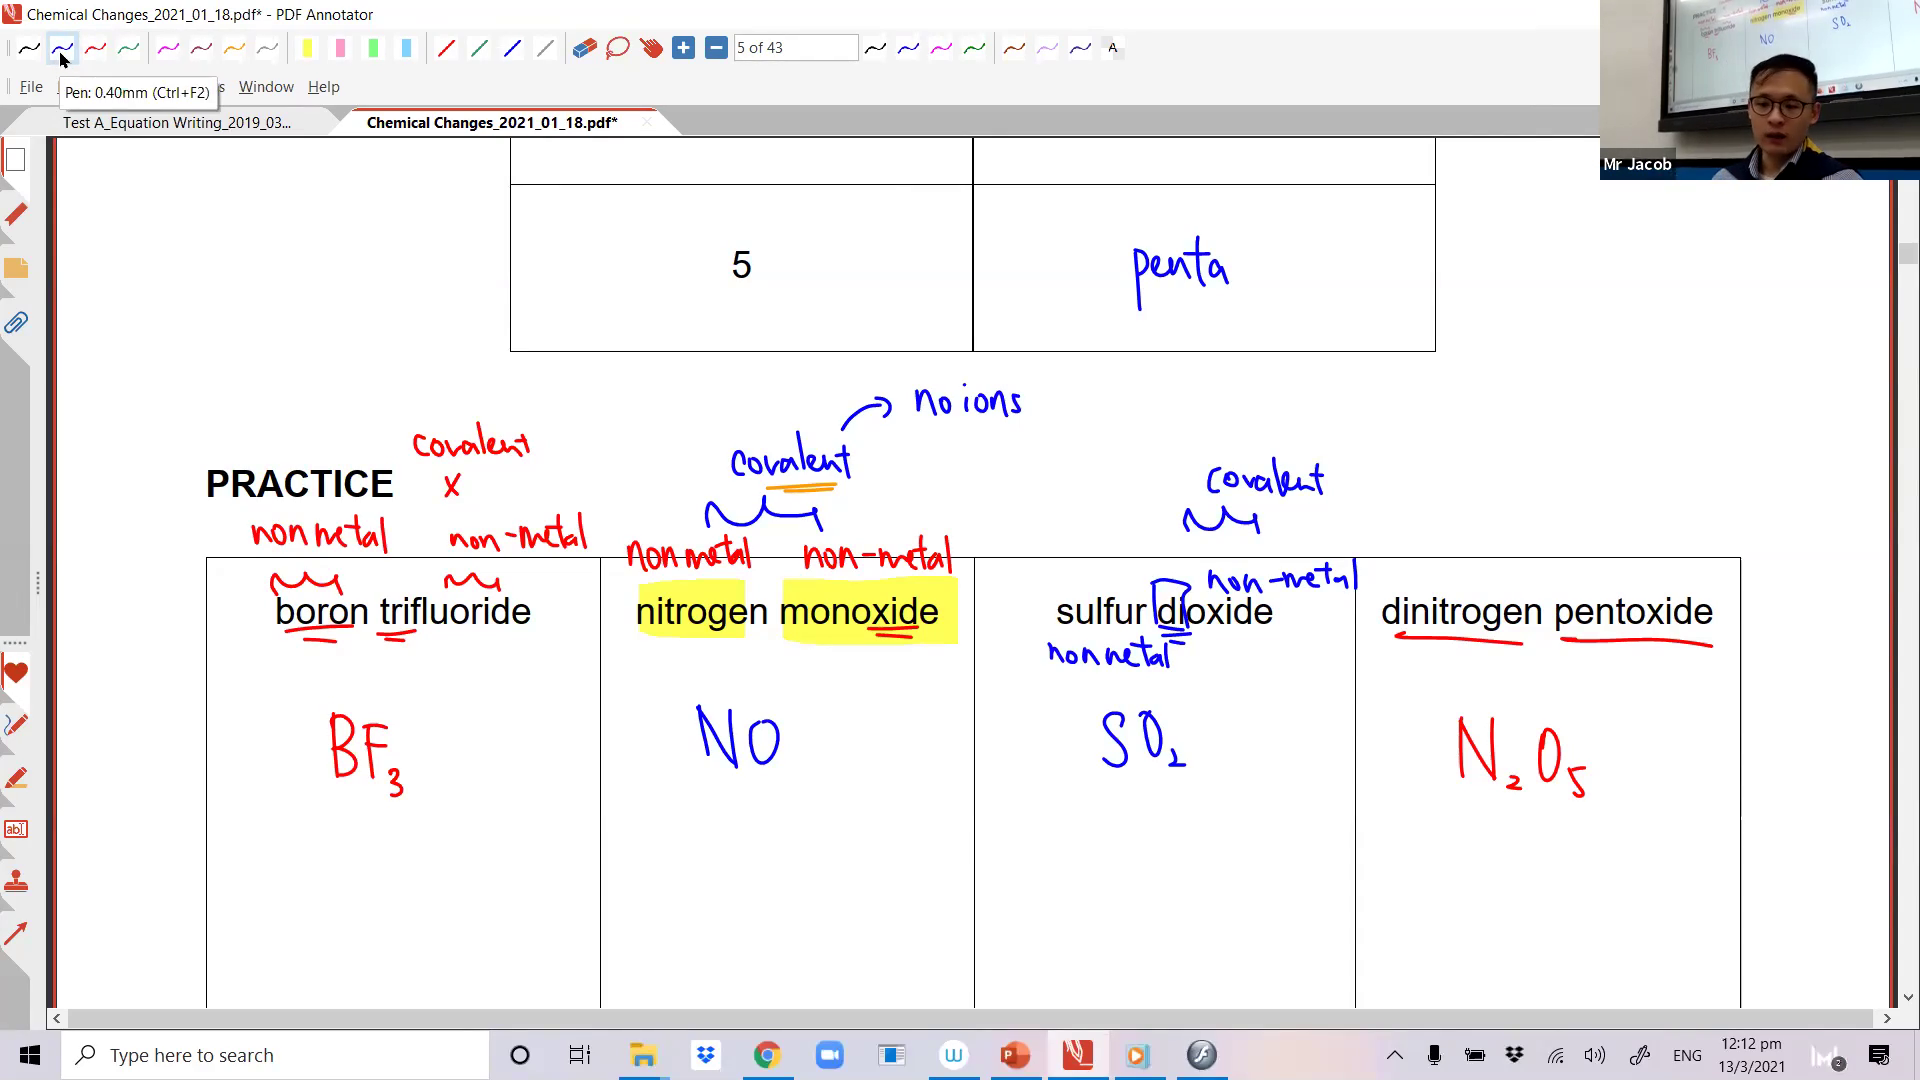 [CHEMICAL CHANGES] Chemical Formulae & Equation Writing